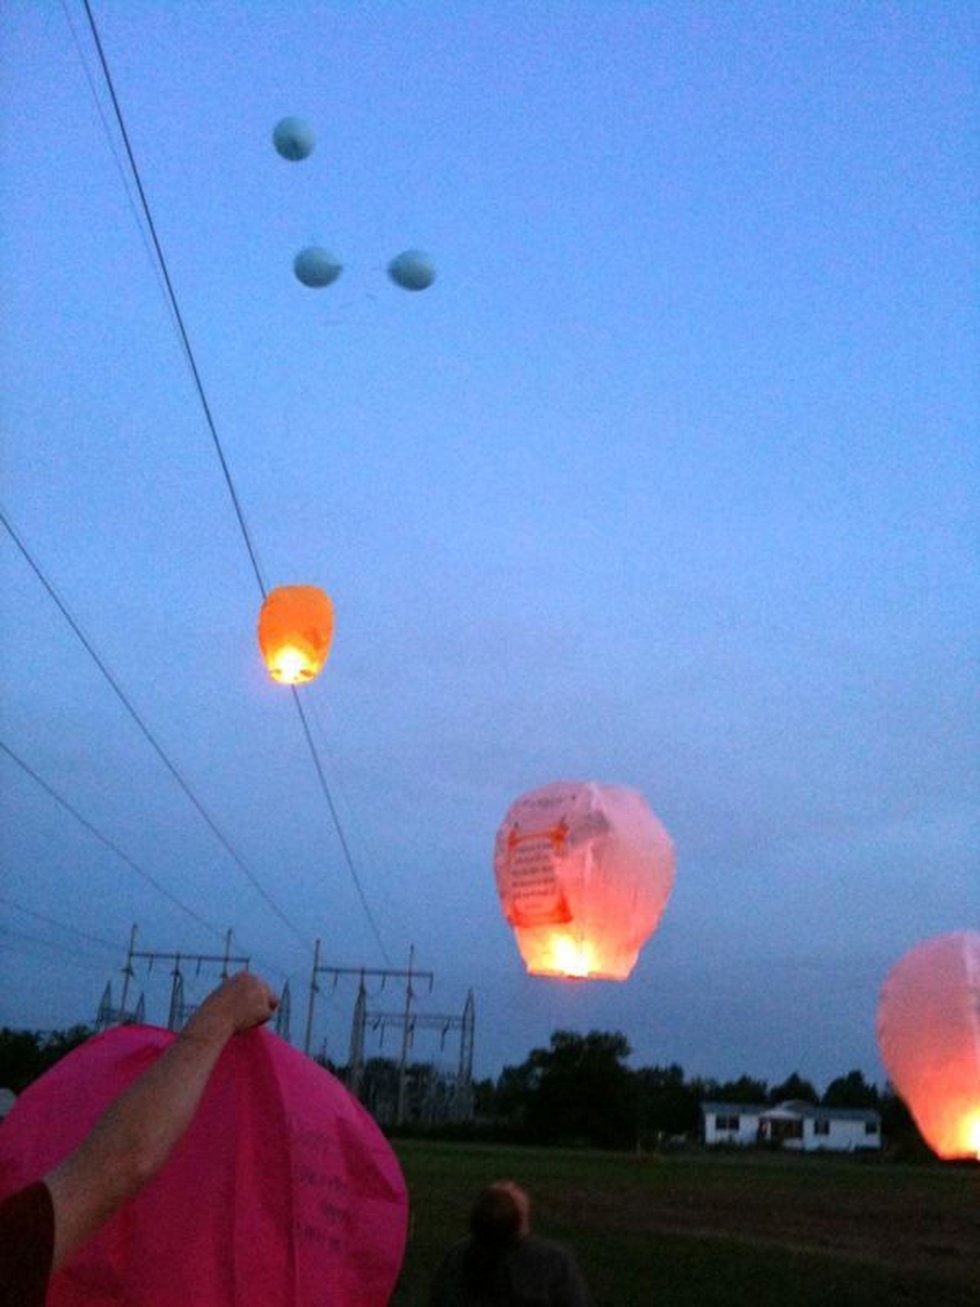 Deborah's family releases balloons and lanterns in her memory.